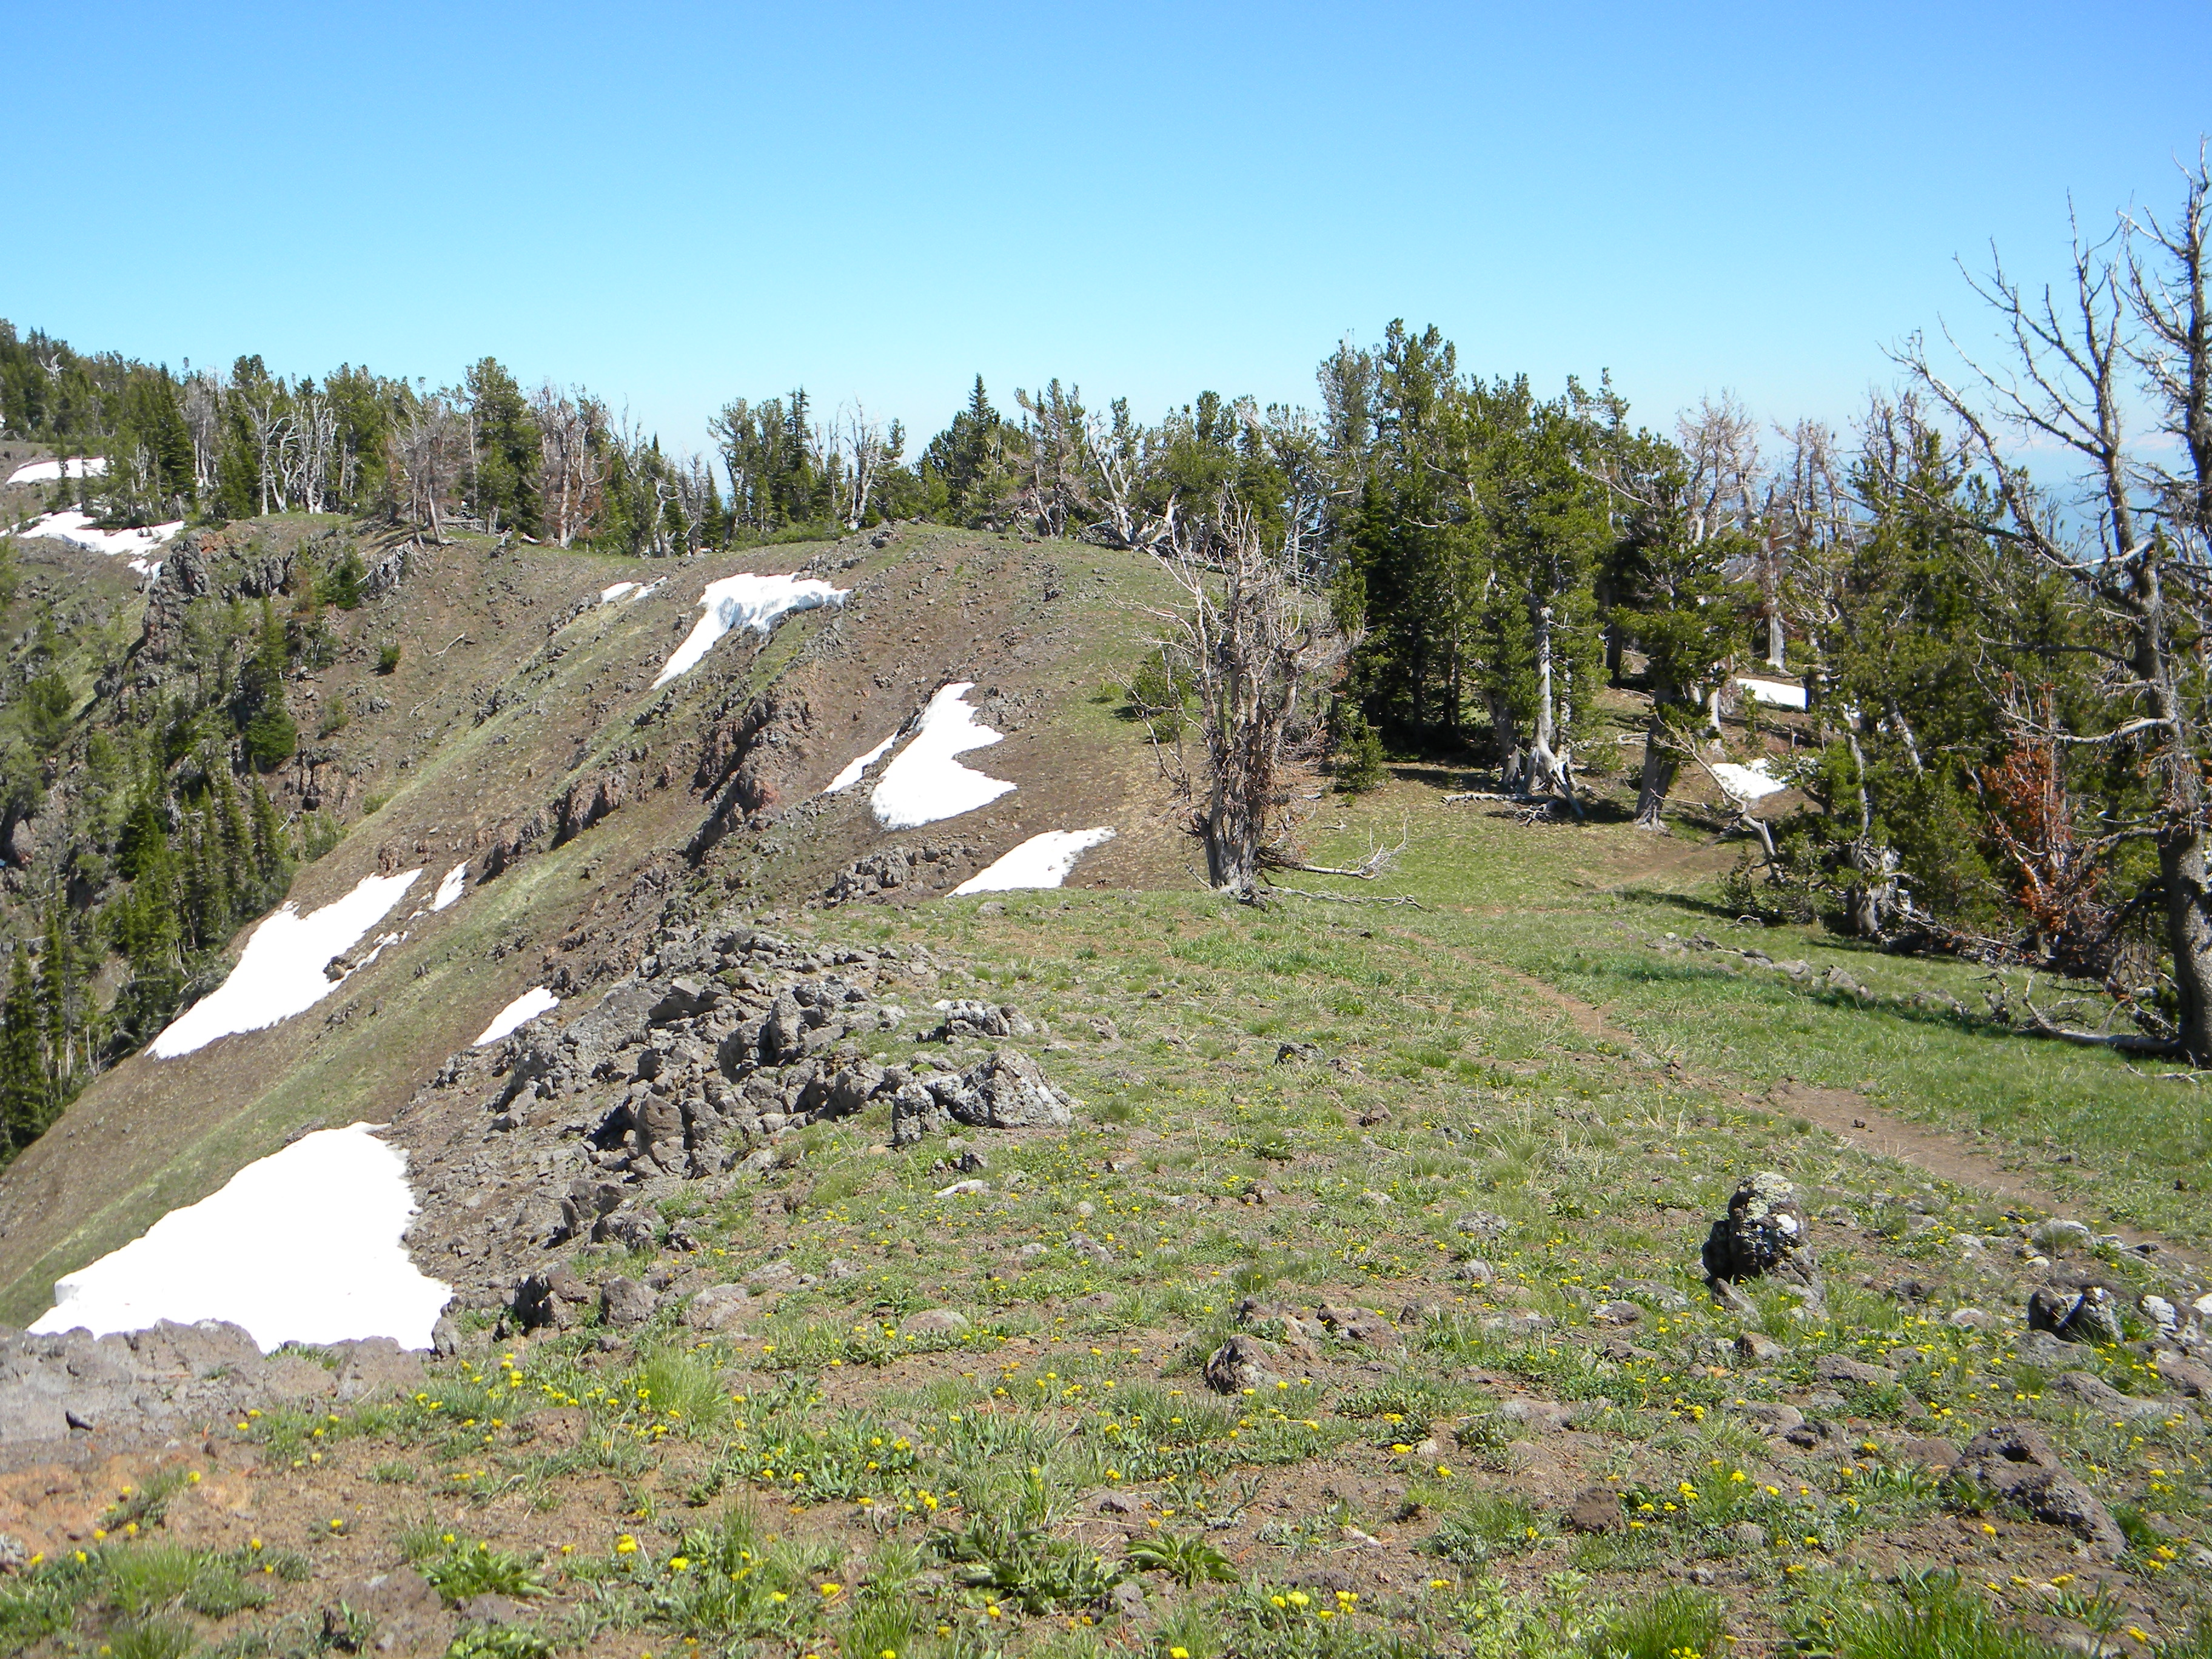 This is the trail along the ridge line about a mile in from the trailhead. June 2009 Mike Hays Photo